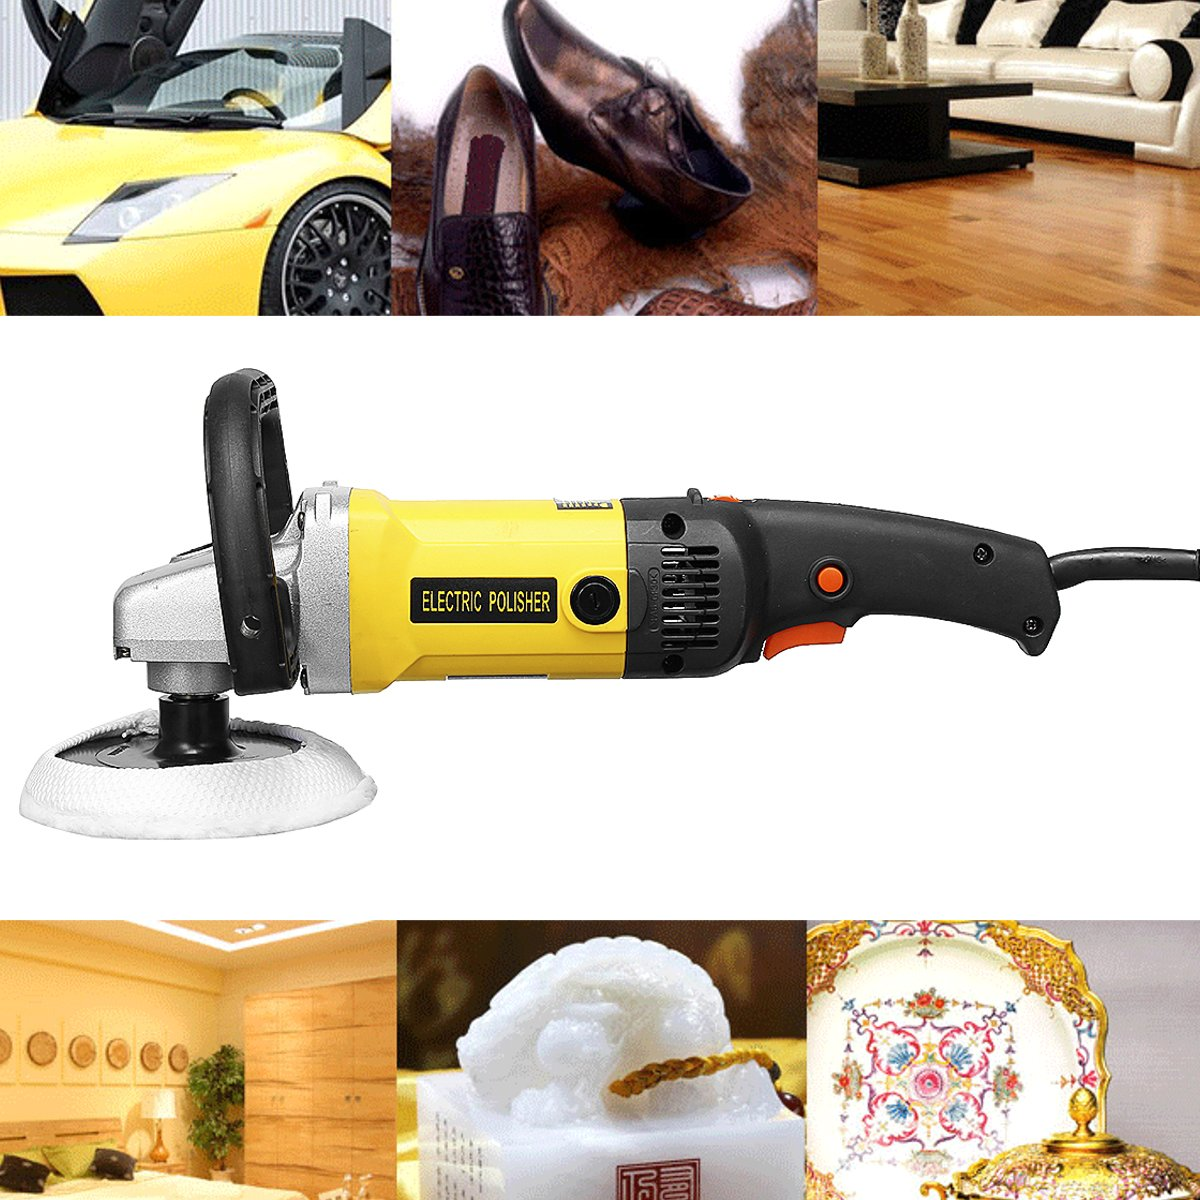 Grinder Mini Polishing Machine Car Polisher Sanding Machine Orbit Polish Adjustable Speed Sanding Waxing Power Tools 1200W 110V